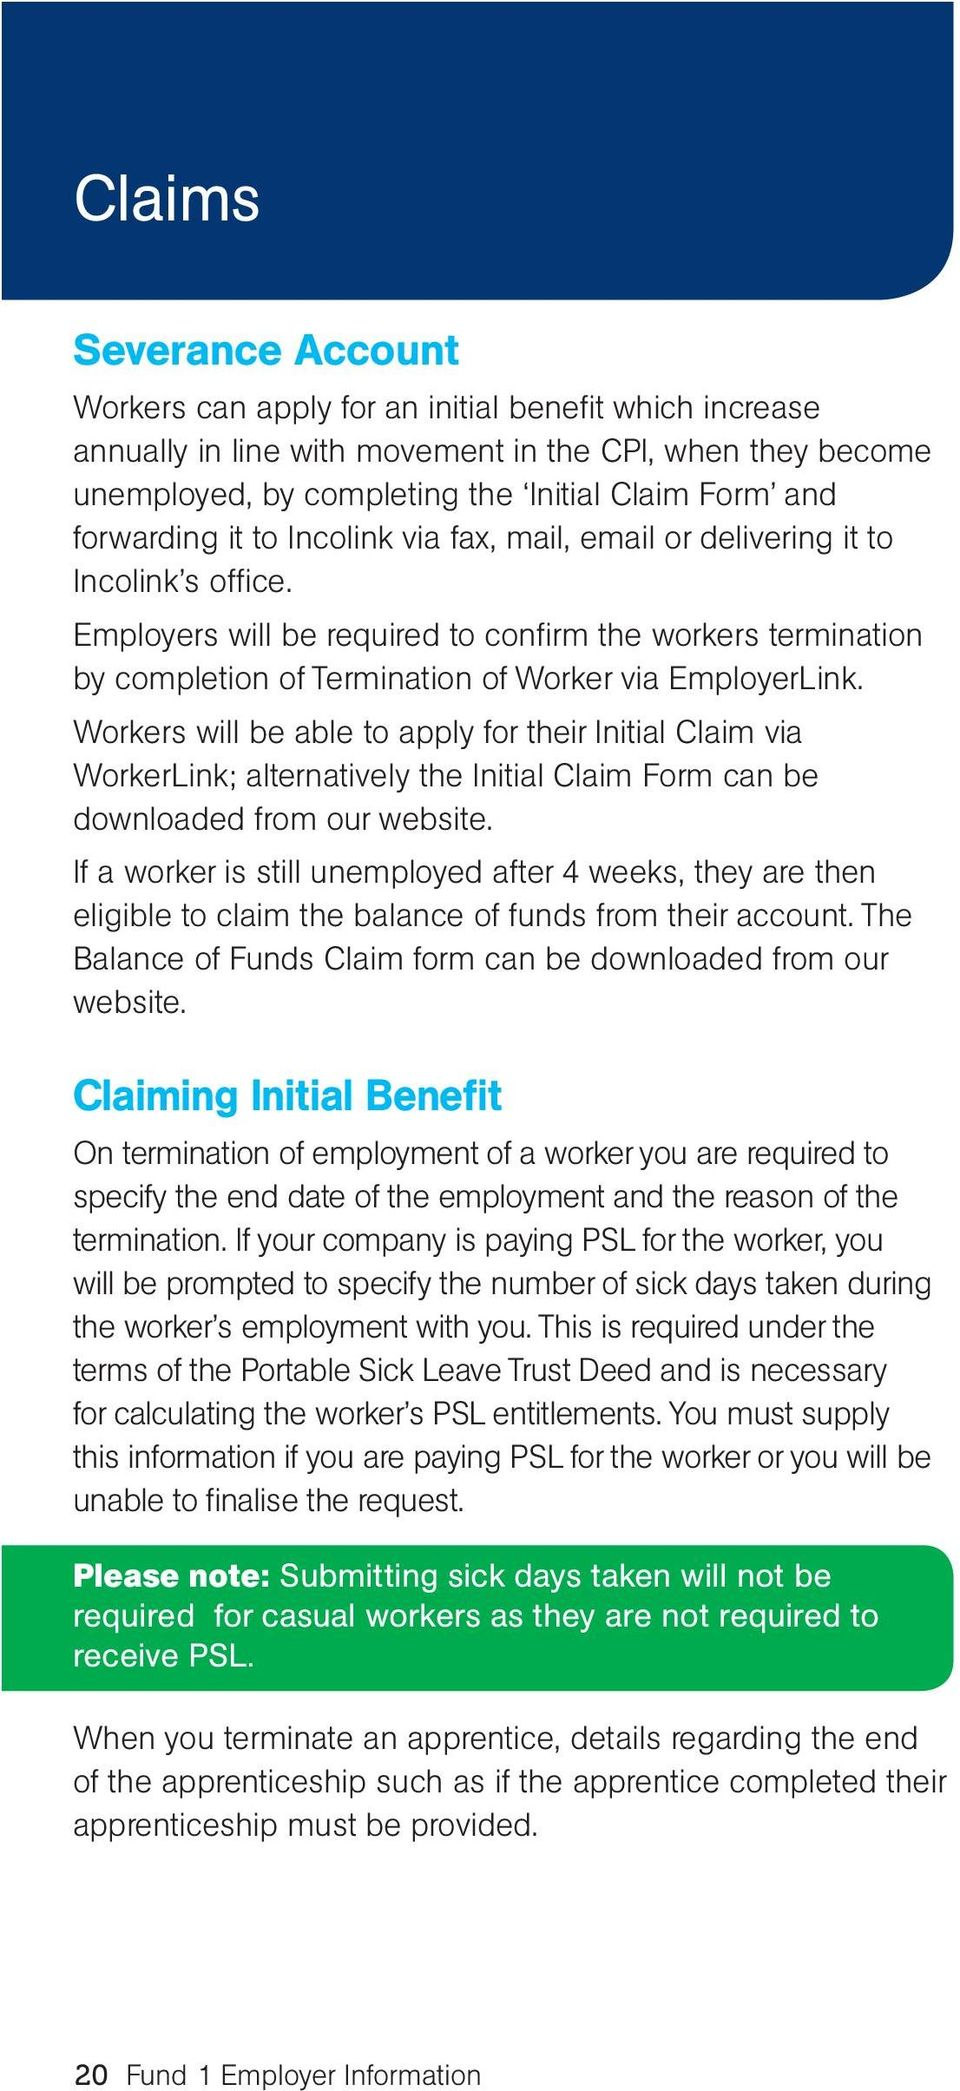 Employers will be required to confirm the workers termination by completion of Termination of Worker via EmployerLink.